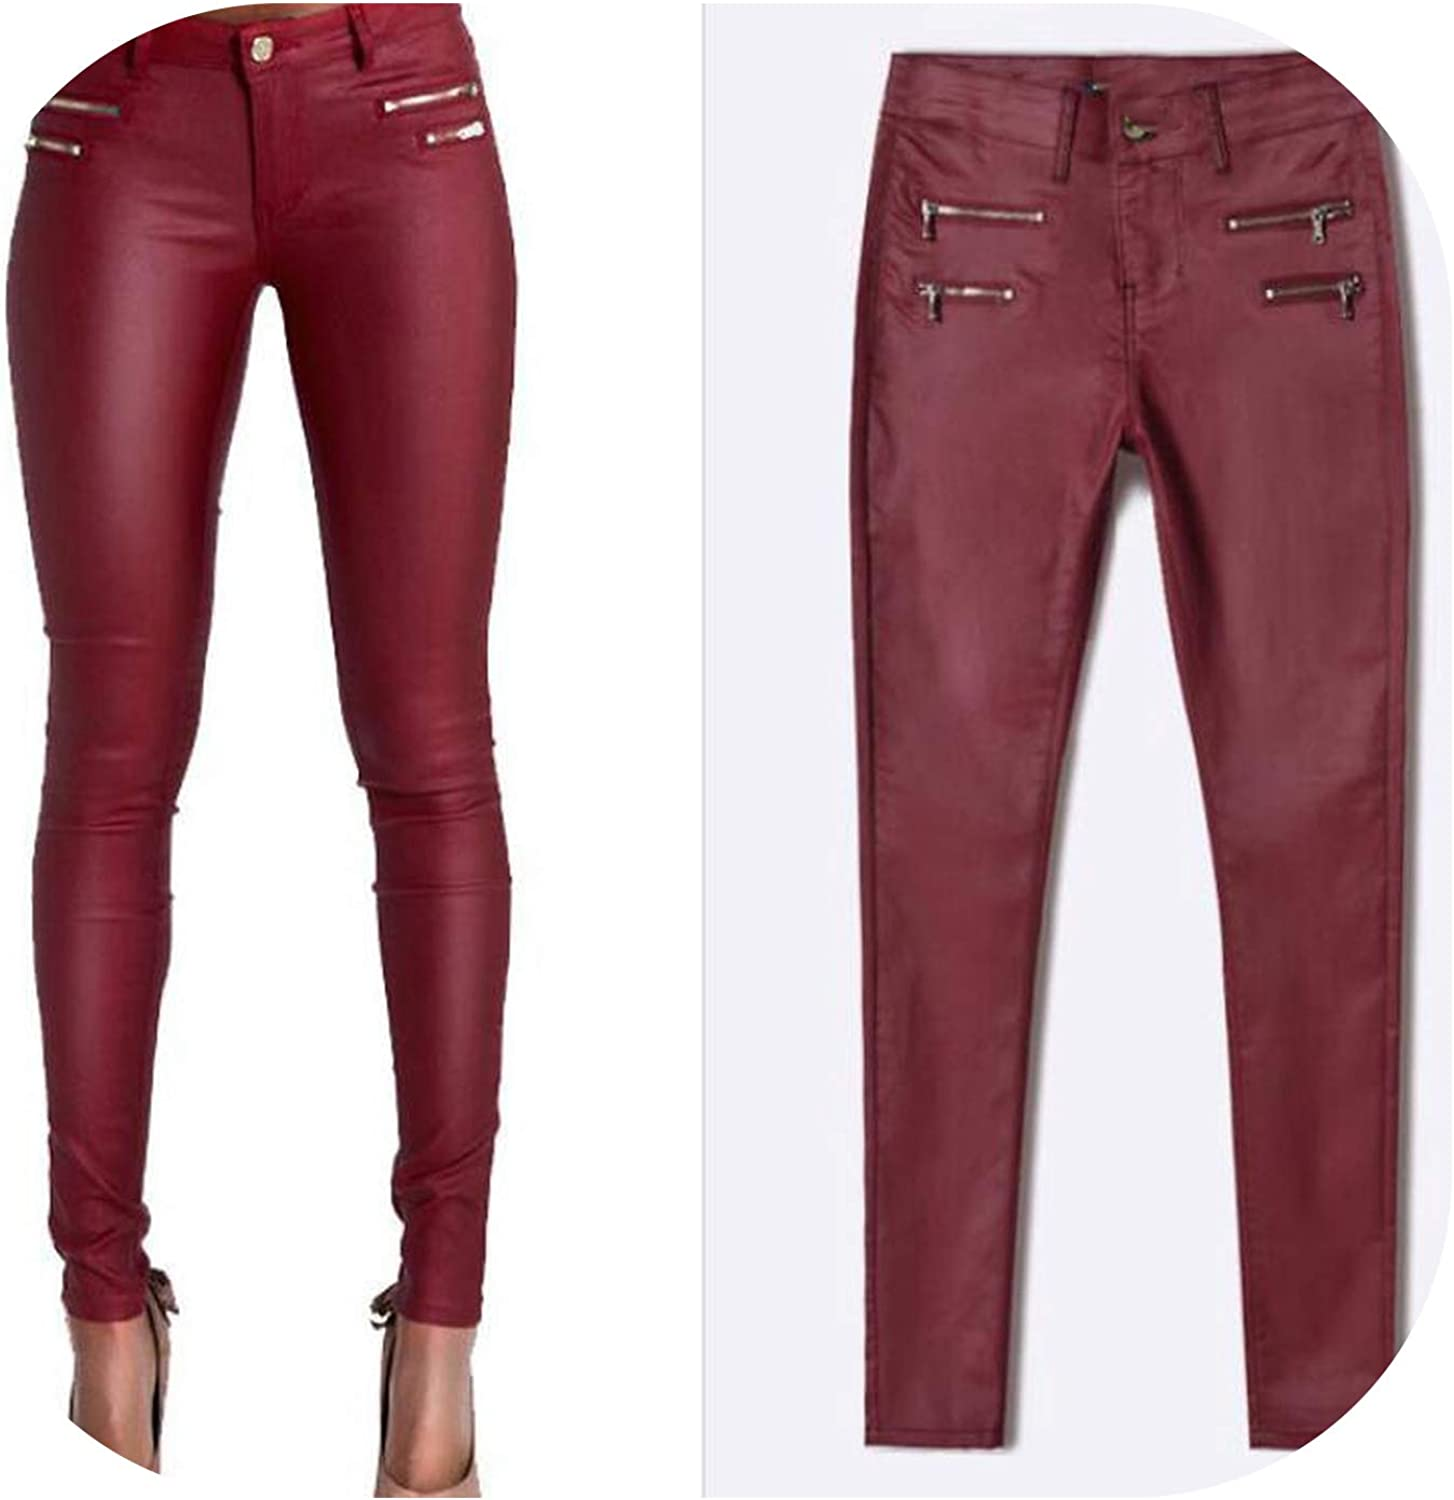 Faux Leather Pants Women Elastic Zipper Leather Pants Trousers Leren Broeken,